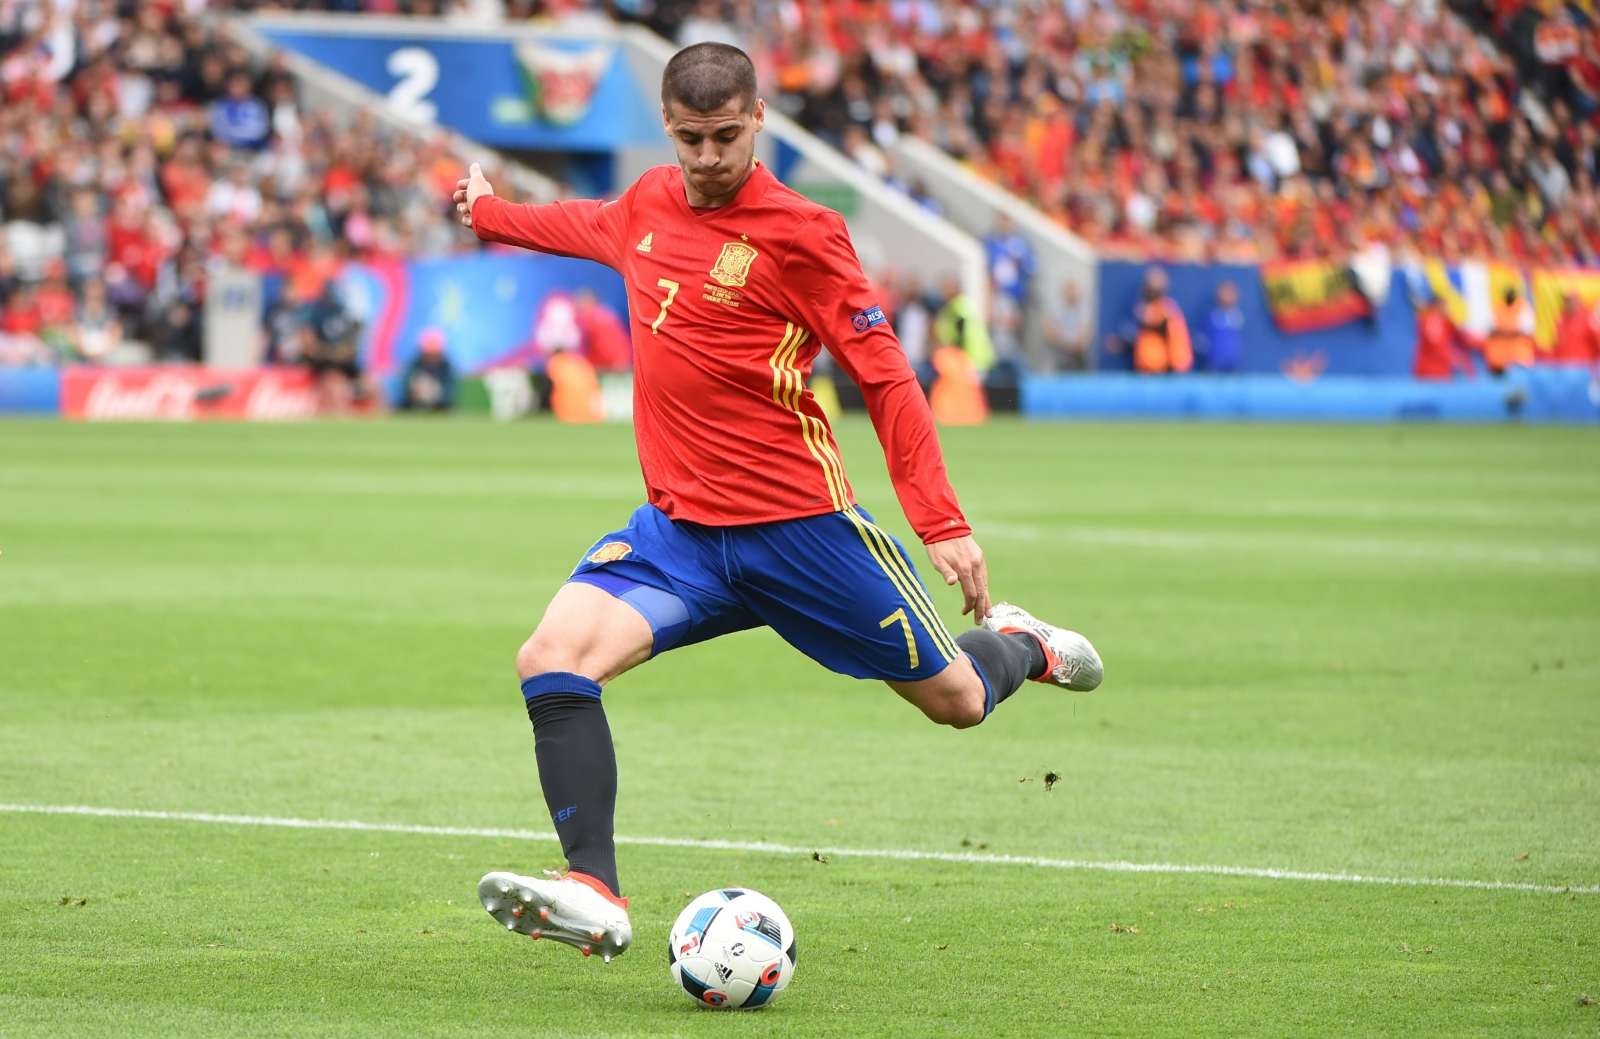 Image result for spain vs italy 2017 morata